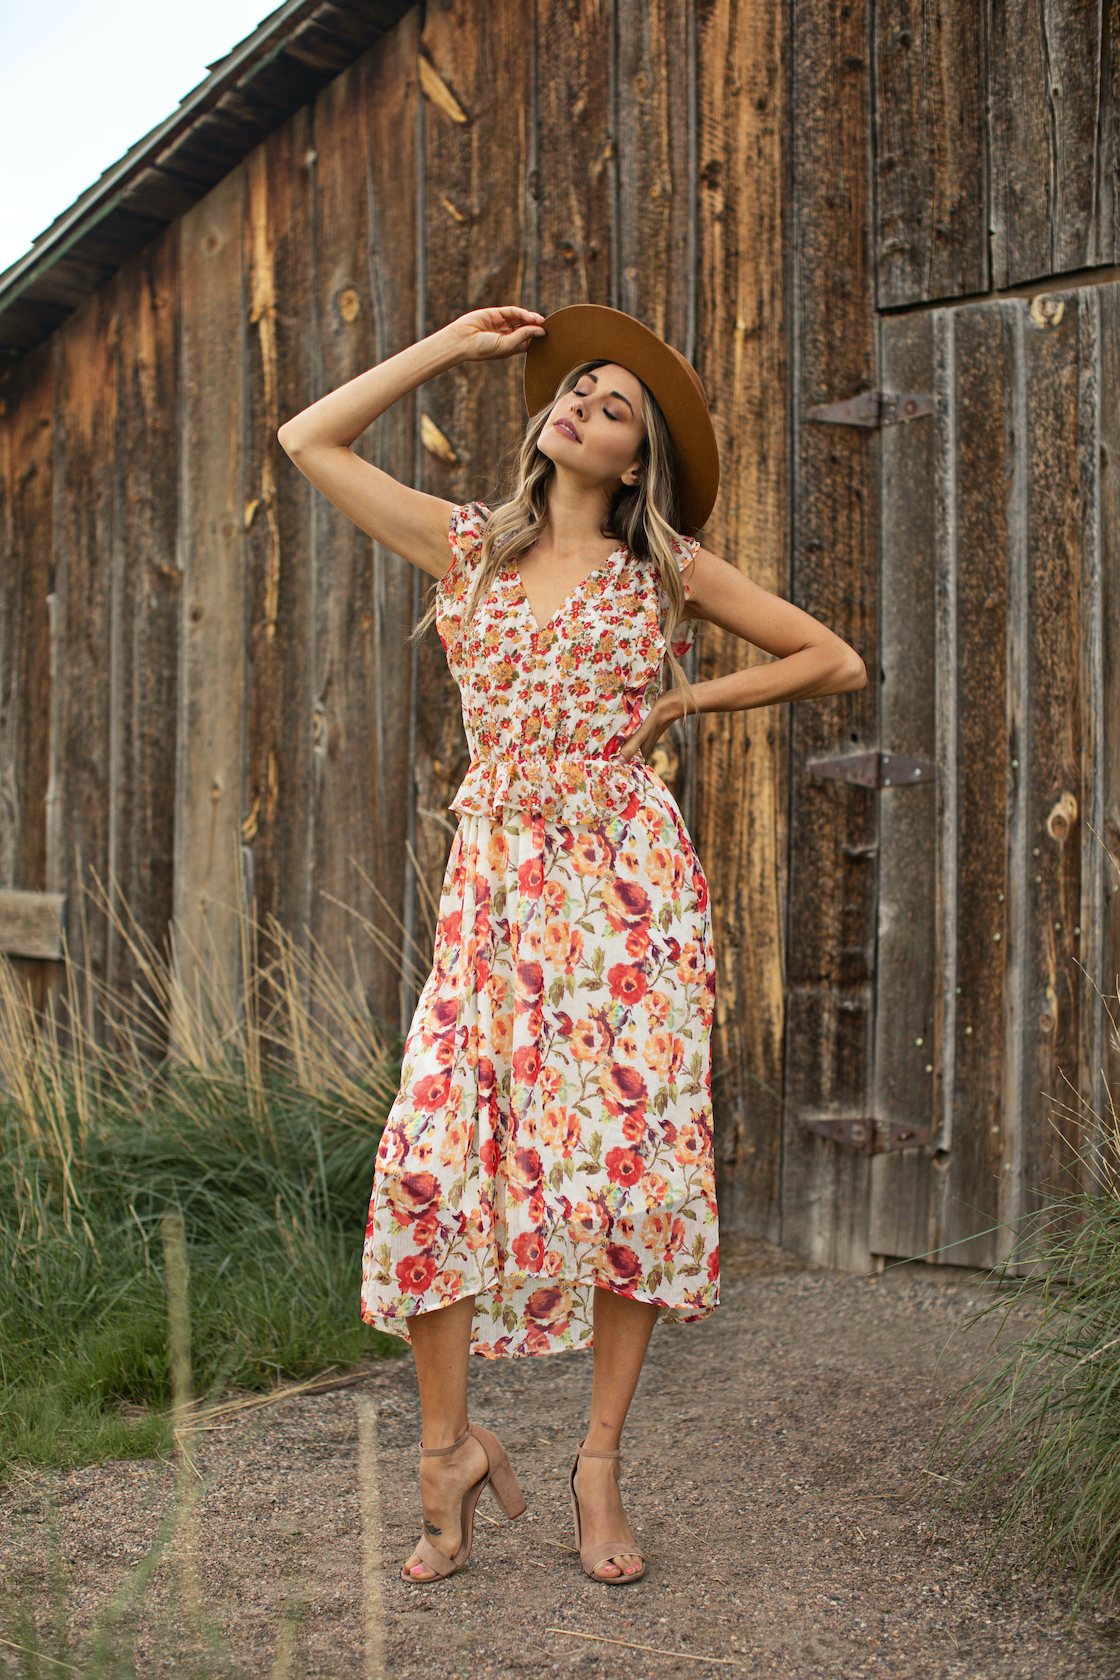 Mixed Floral With Crisscross Back -Ivory/Orange - Front